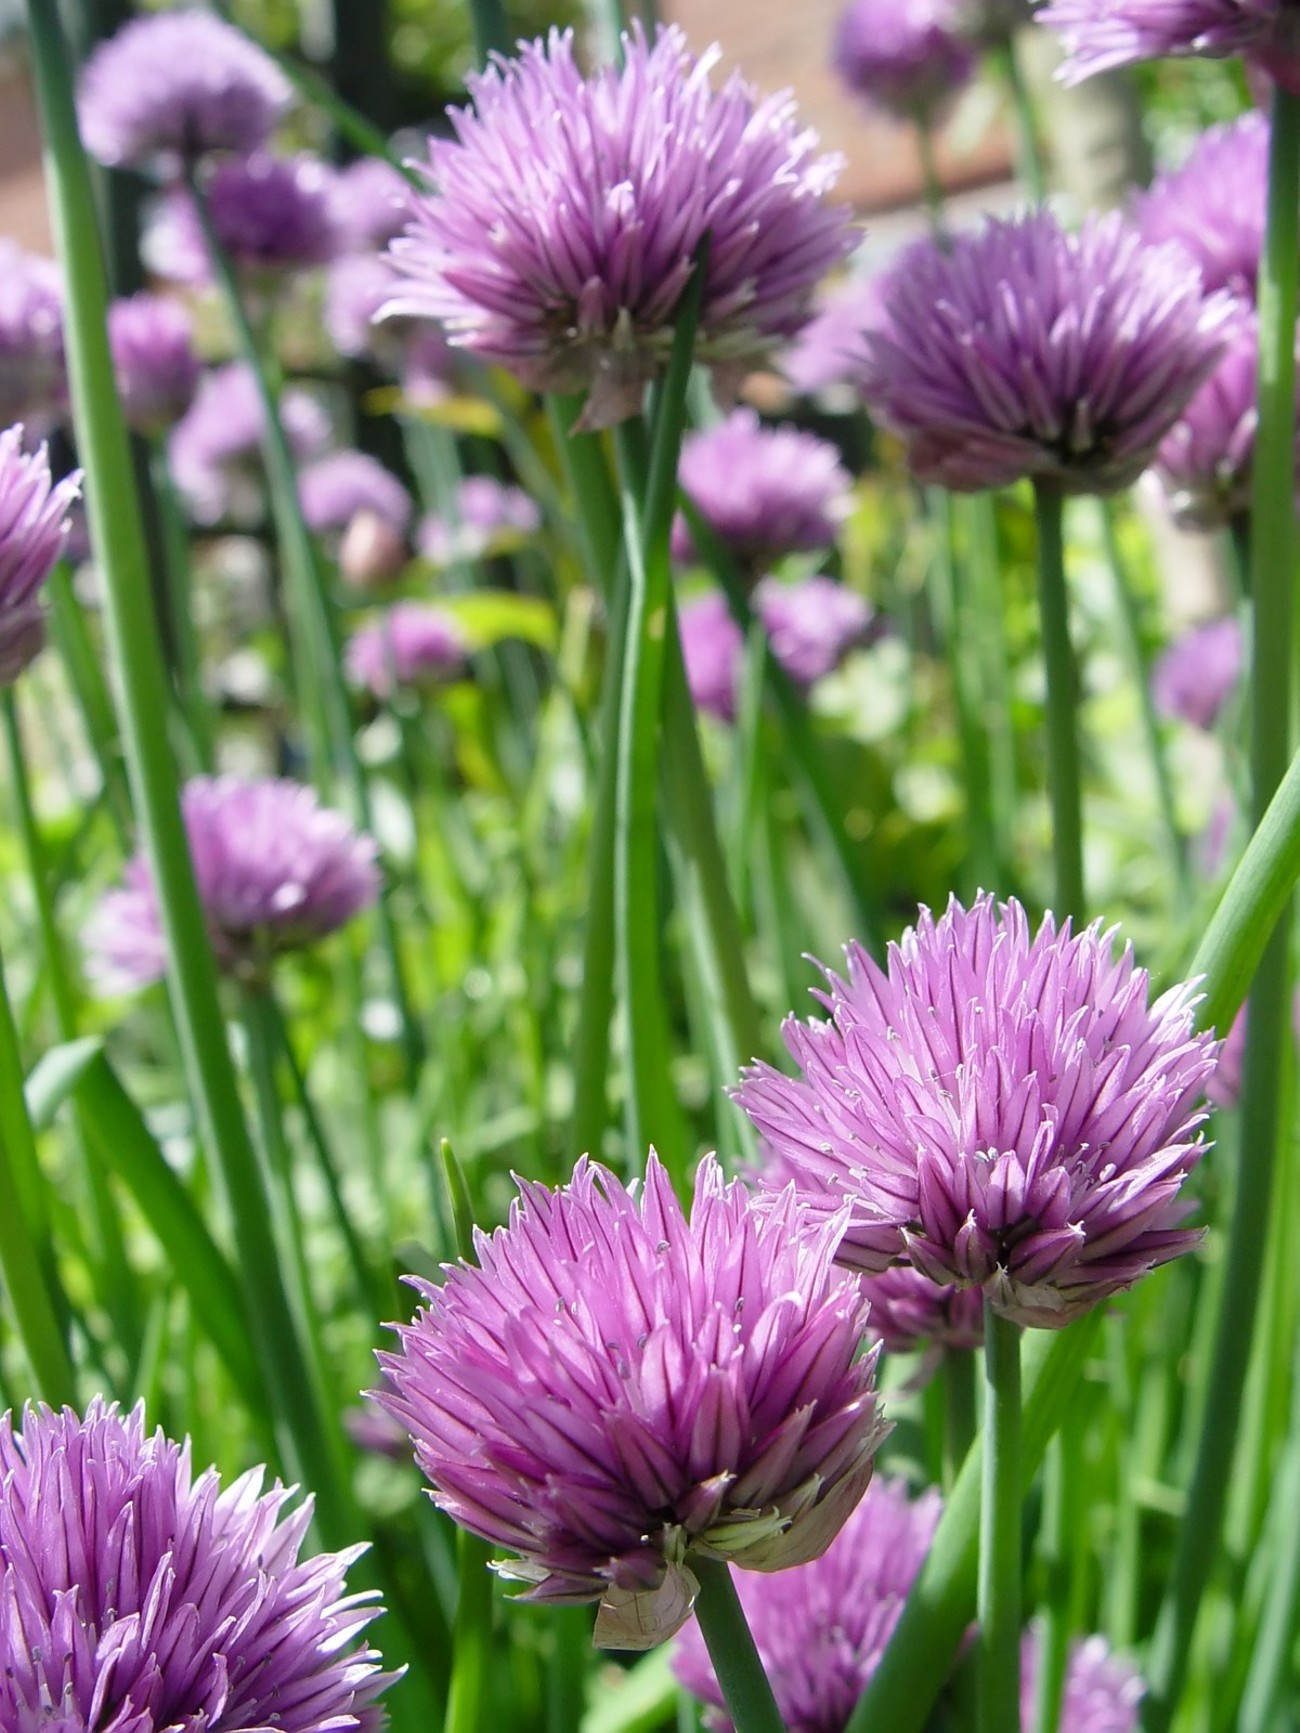 Close up of the flowers of some Chives (Allium schoenoprasum). The stalks are a herb used in seasoning and the plant is the smallest plant of the onion family.